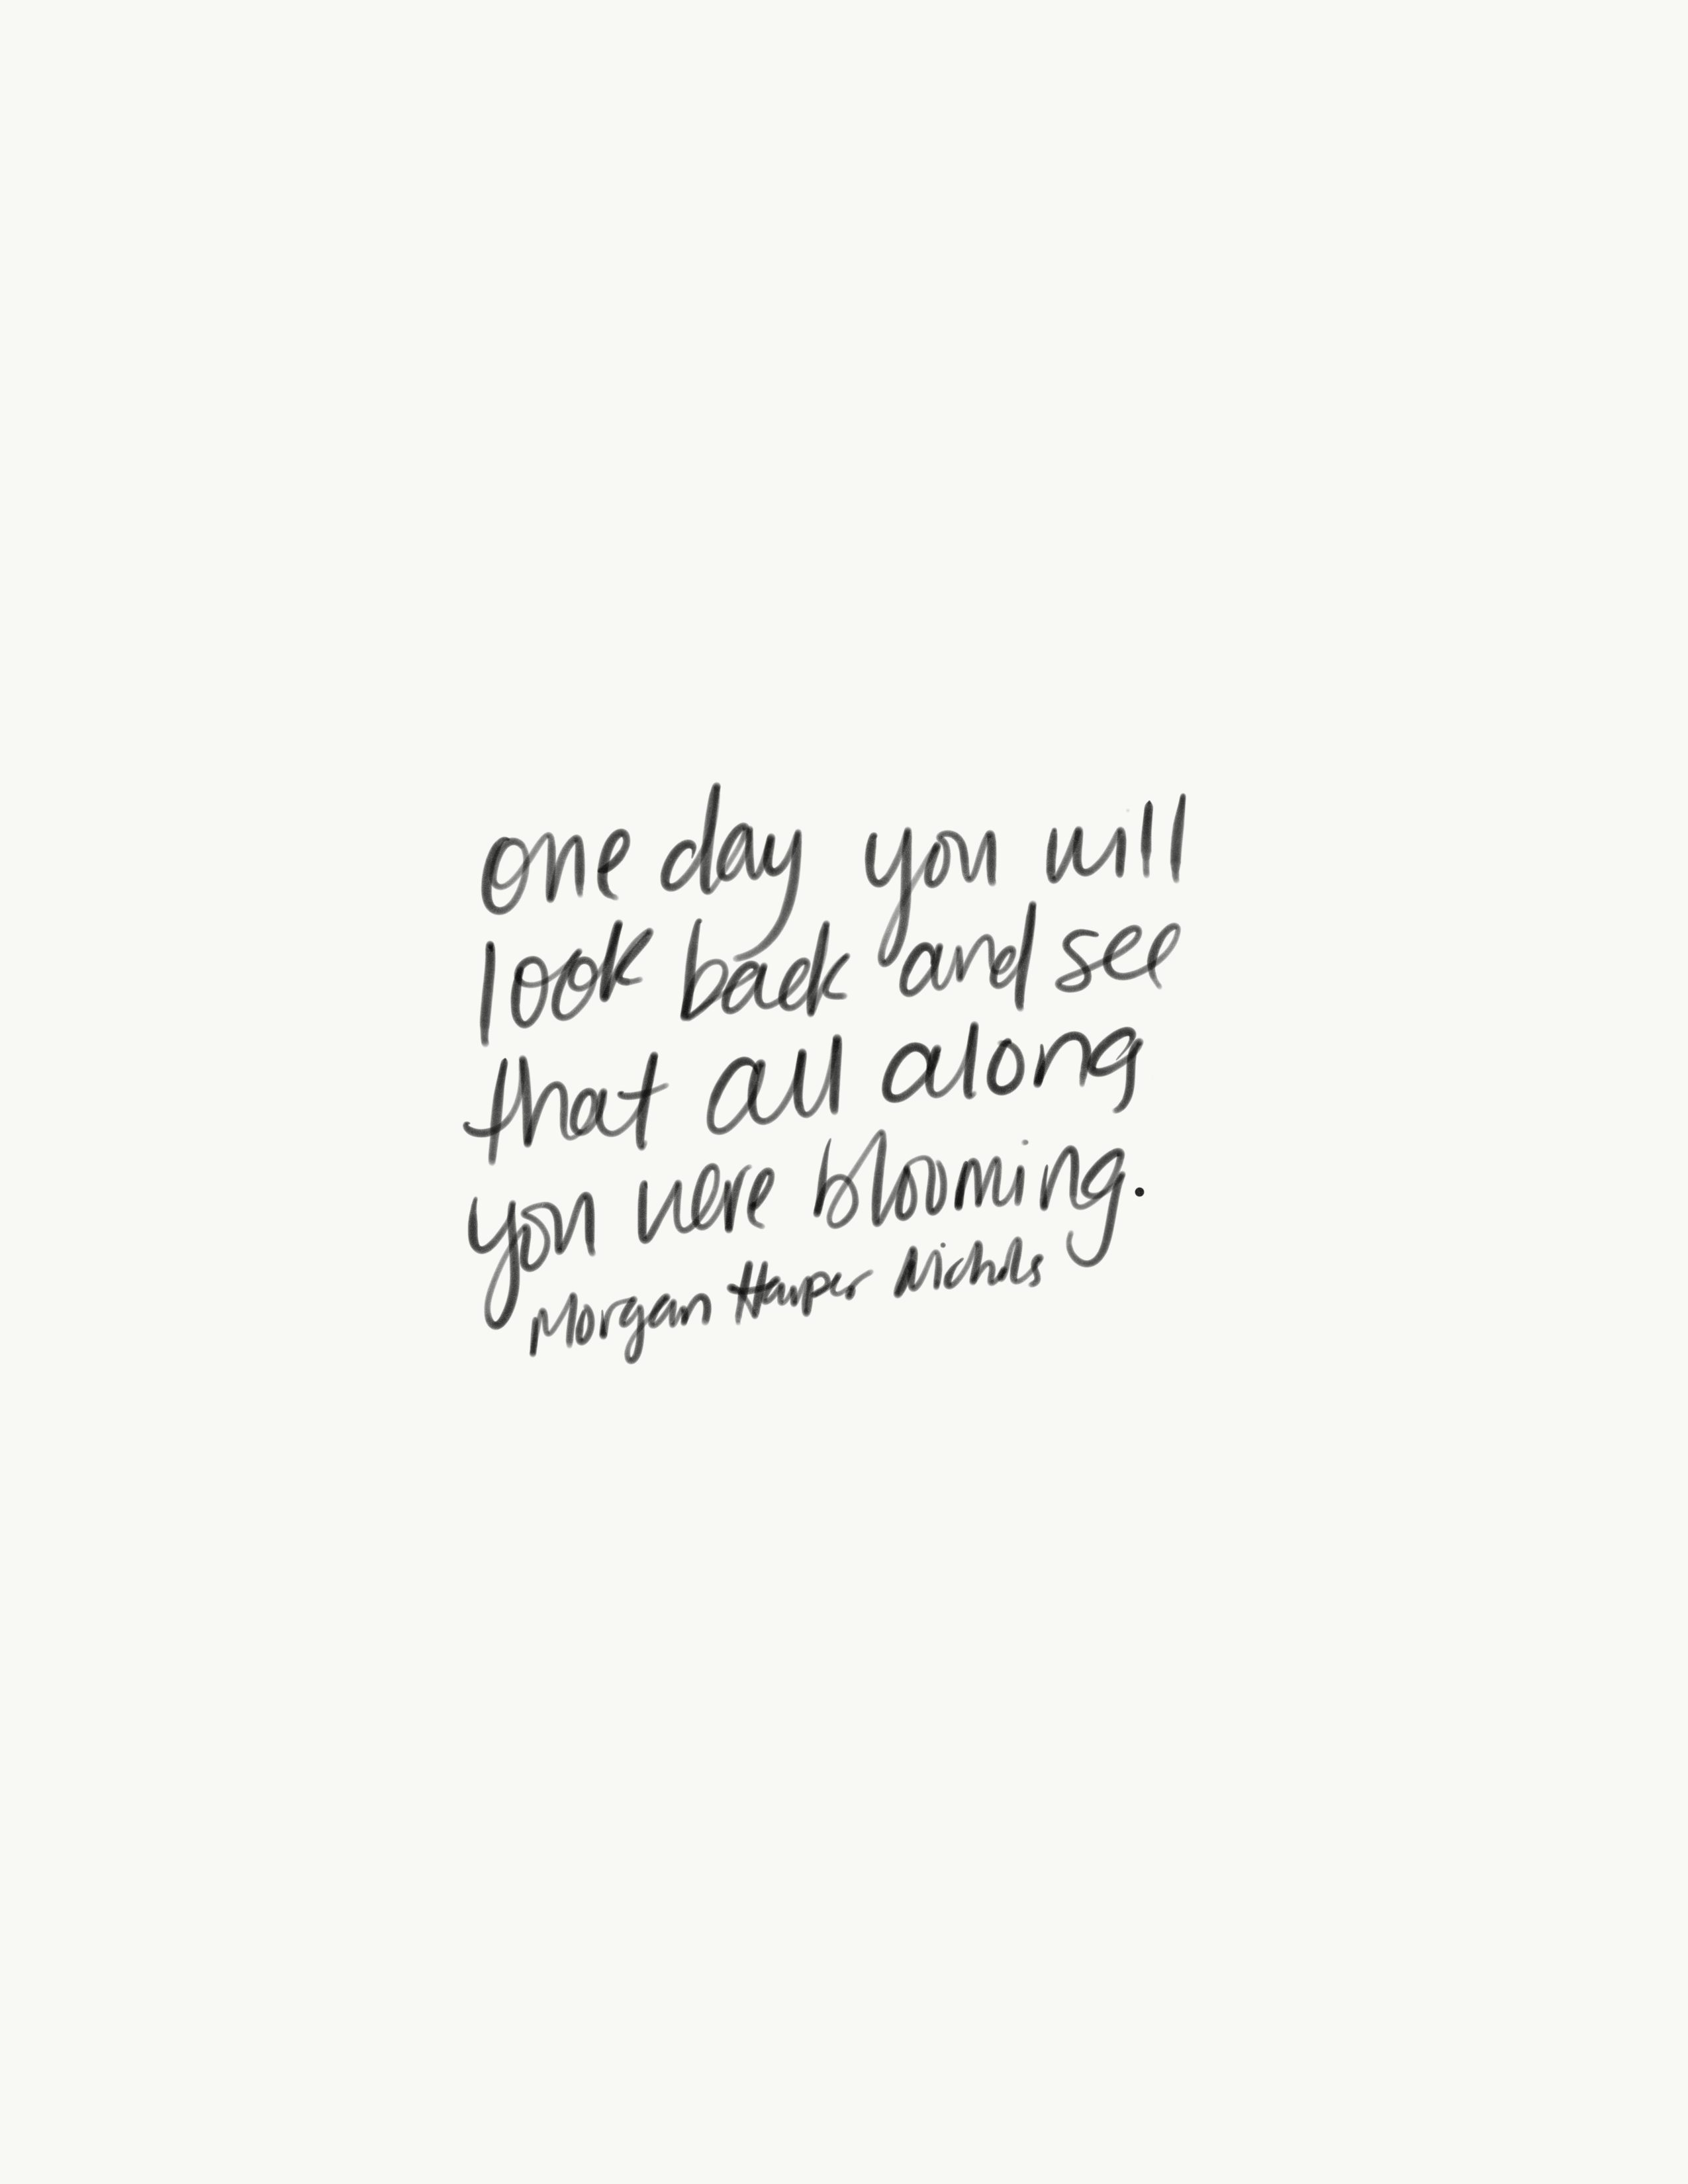 2018 quotes, new years, 2017 quotes, yoga quotes, end of